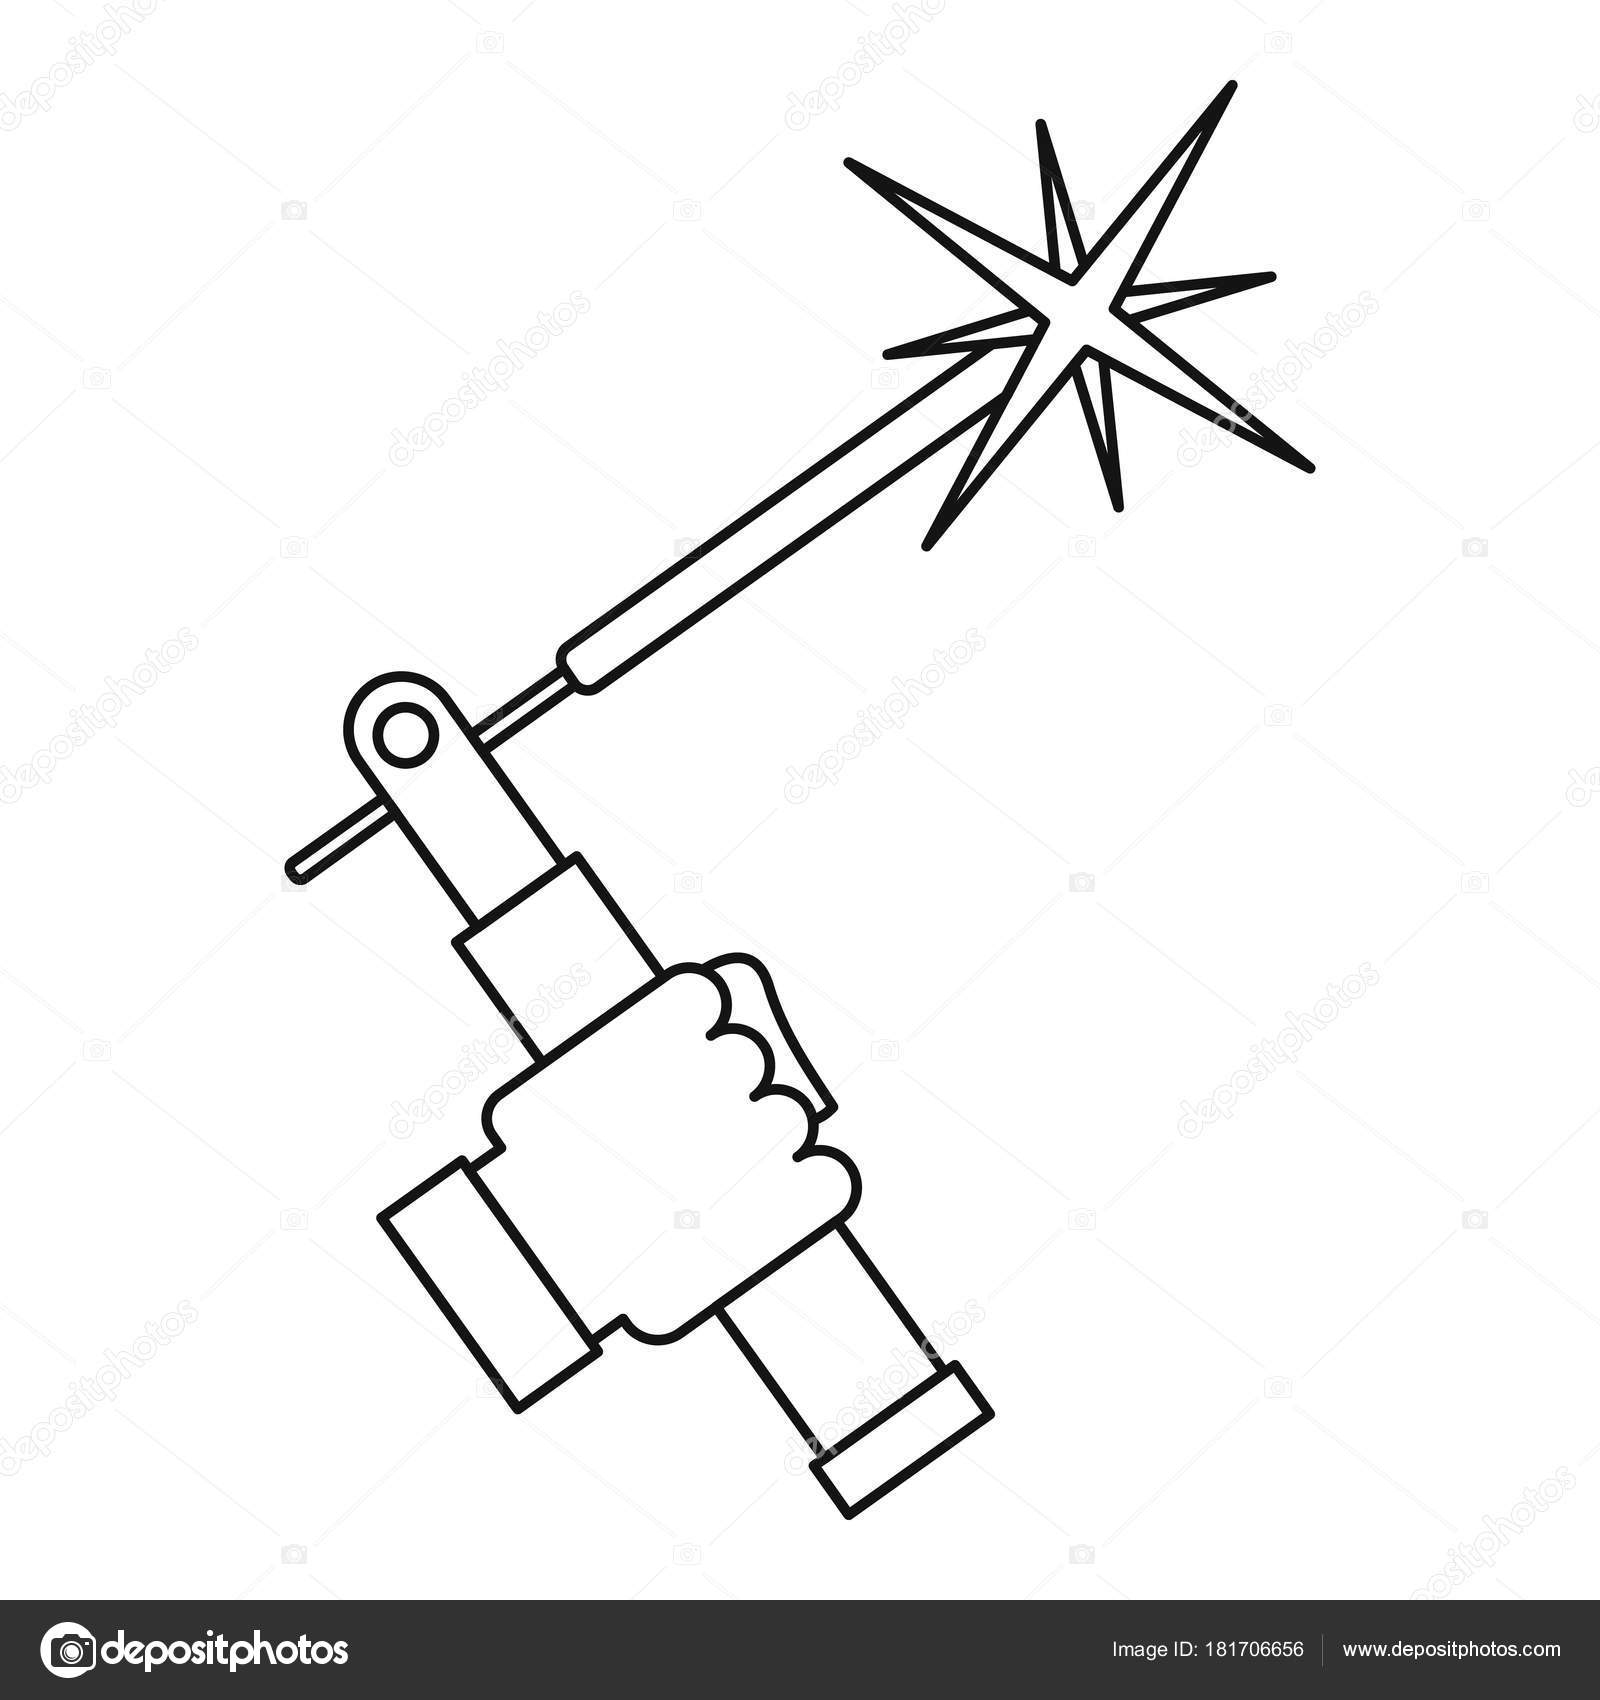 Mig welding torch in hand icon outline — Stock Vector